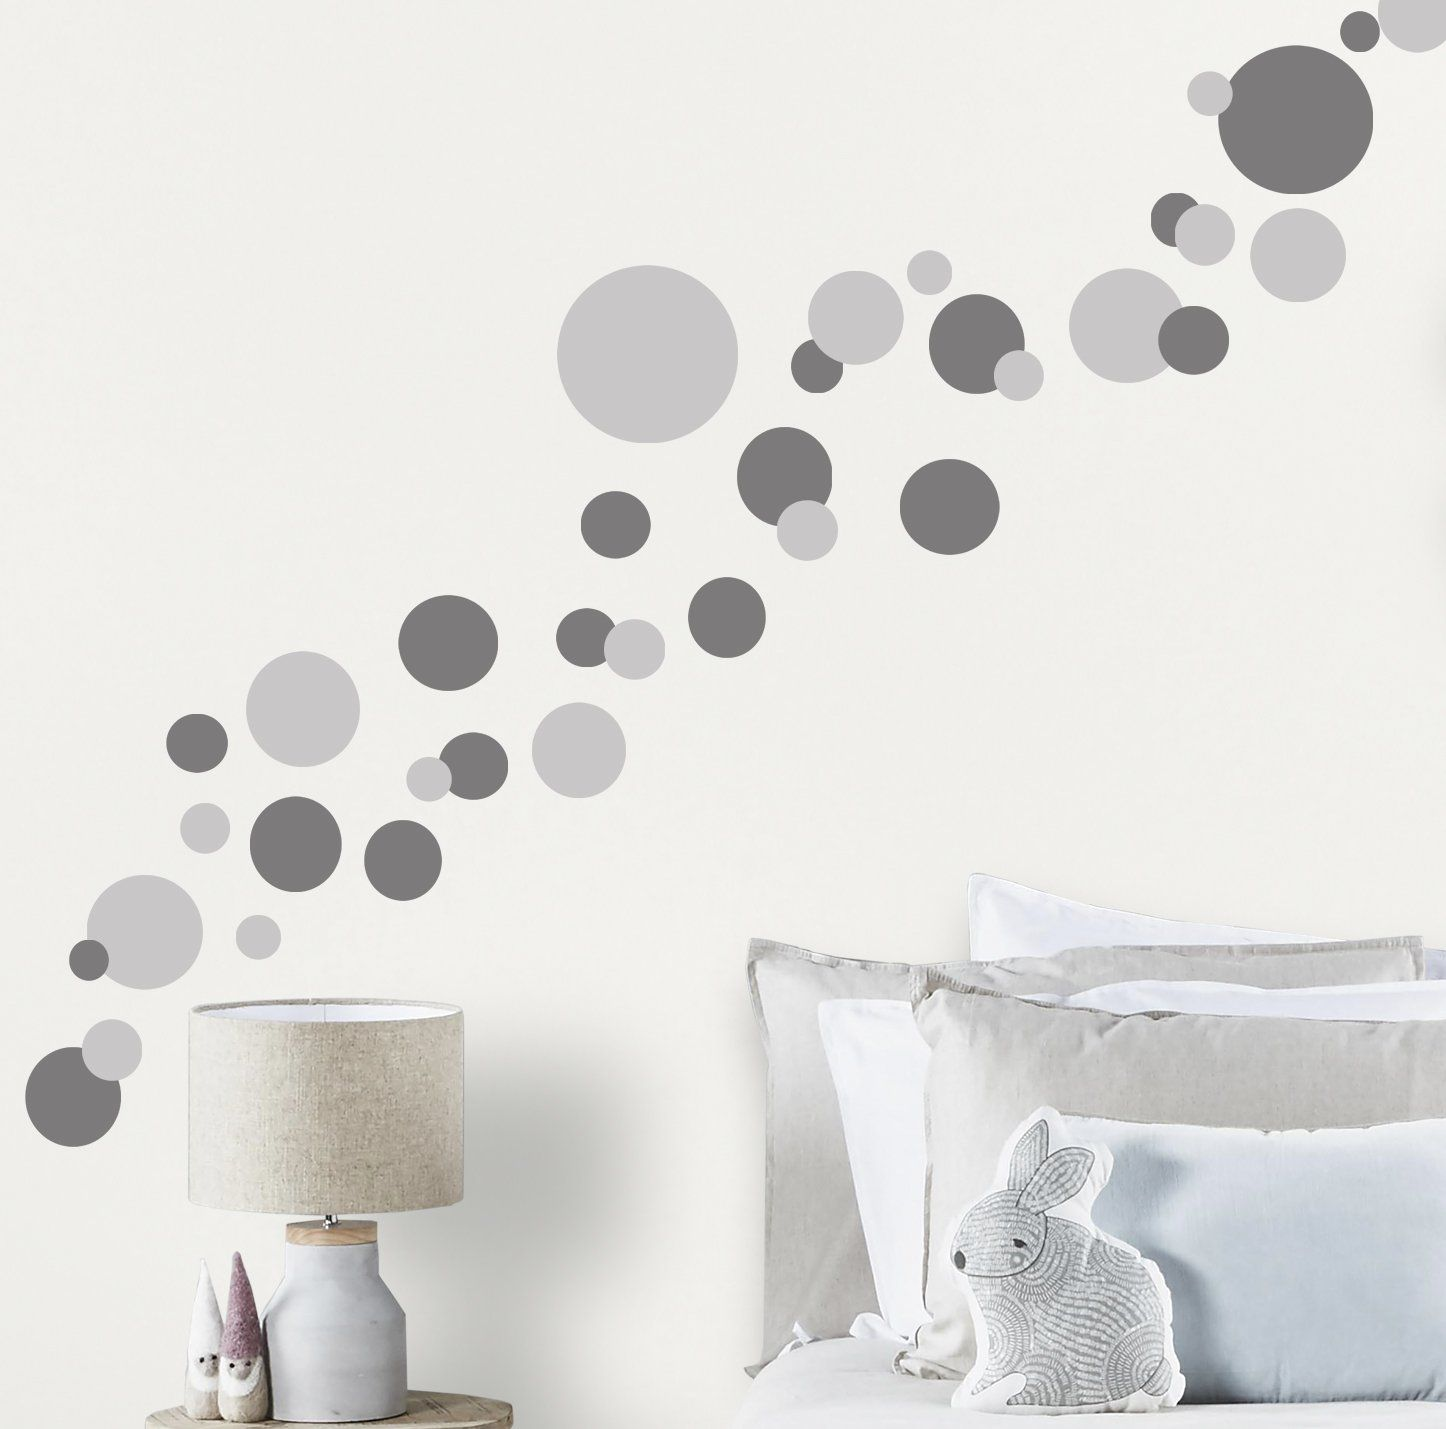 Set of 50 Wall Stickers Confetti Decals Paper clip Decals Office stickers Scandi Decals Paper Clip Wall Stickers Wall Pattern Decals